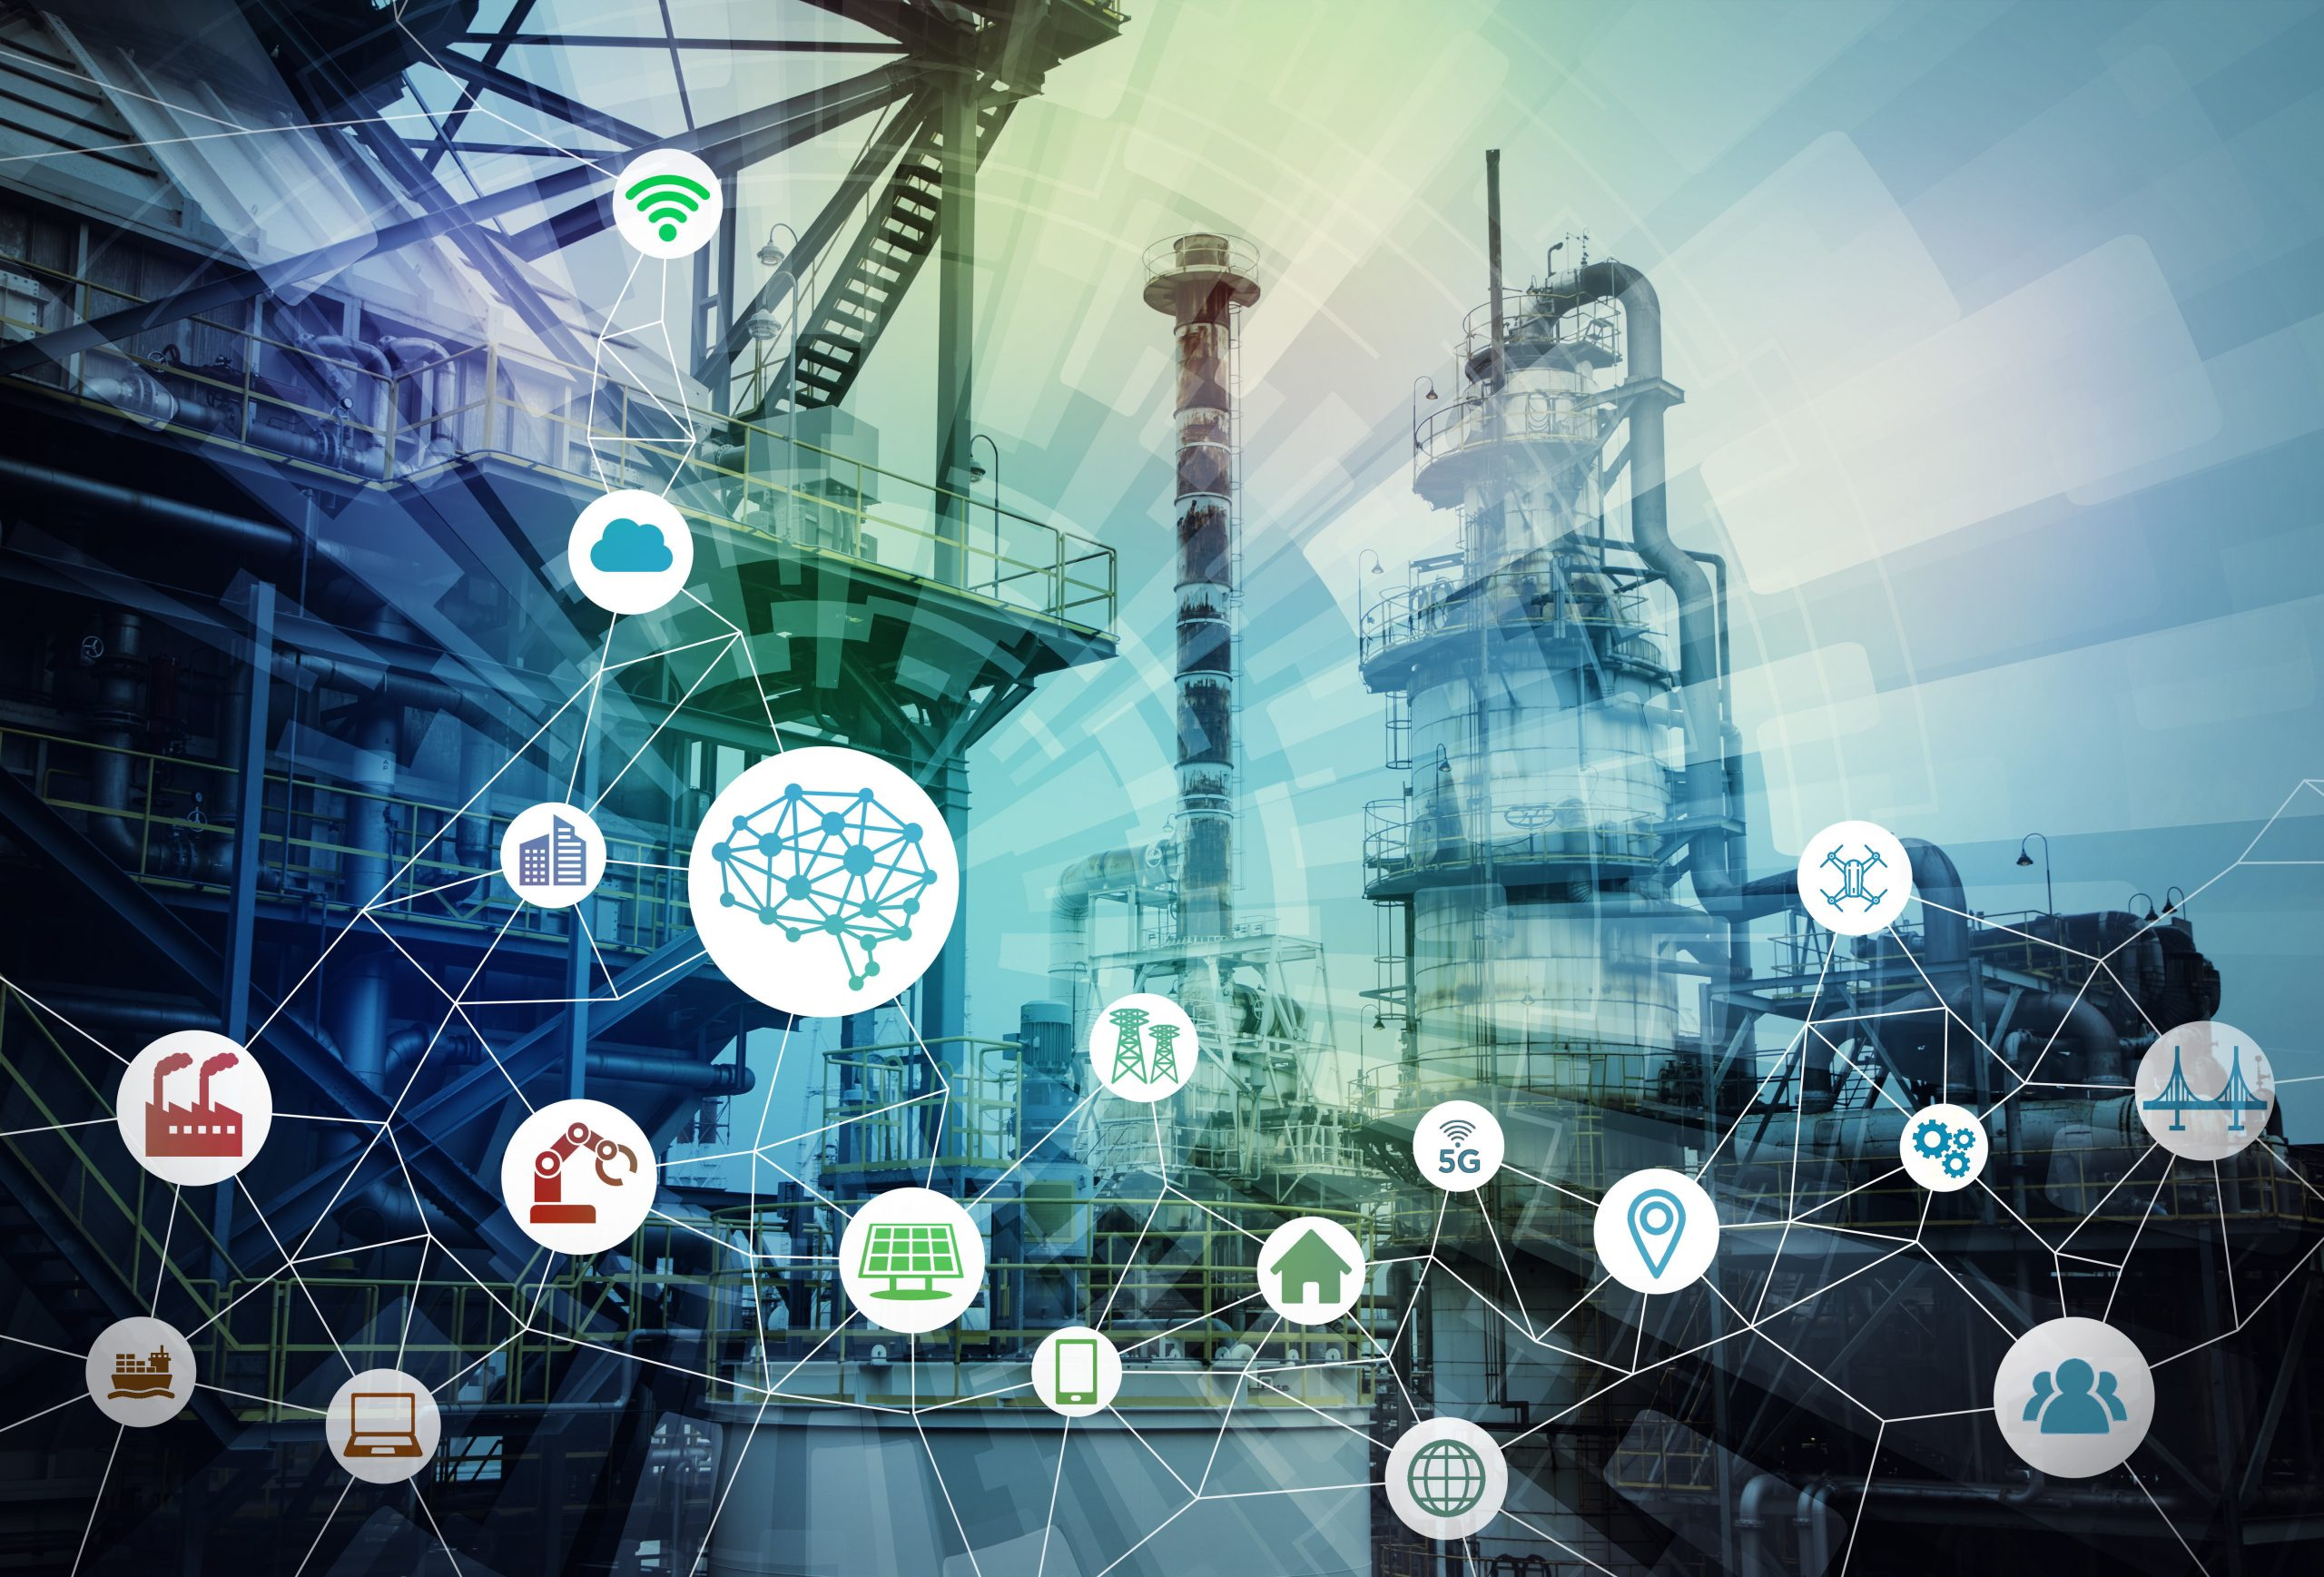 Campus solution_Industry 4.0